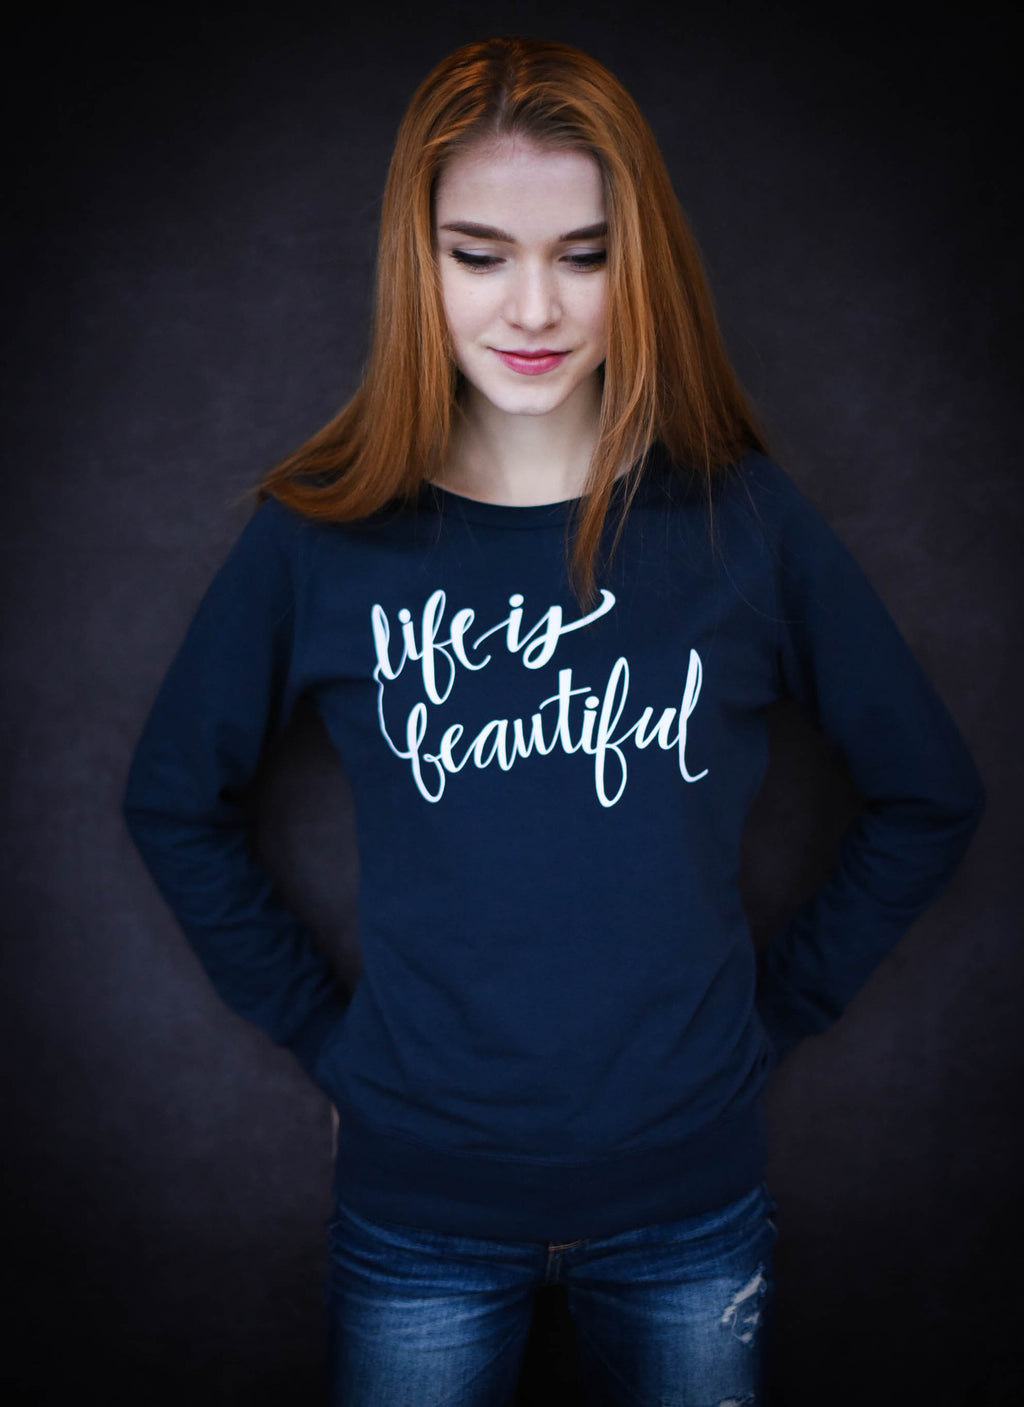 Life is Beautiful - Ethical Organic Modern Loose Fit Women's Sweatshirt